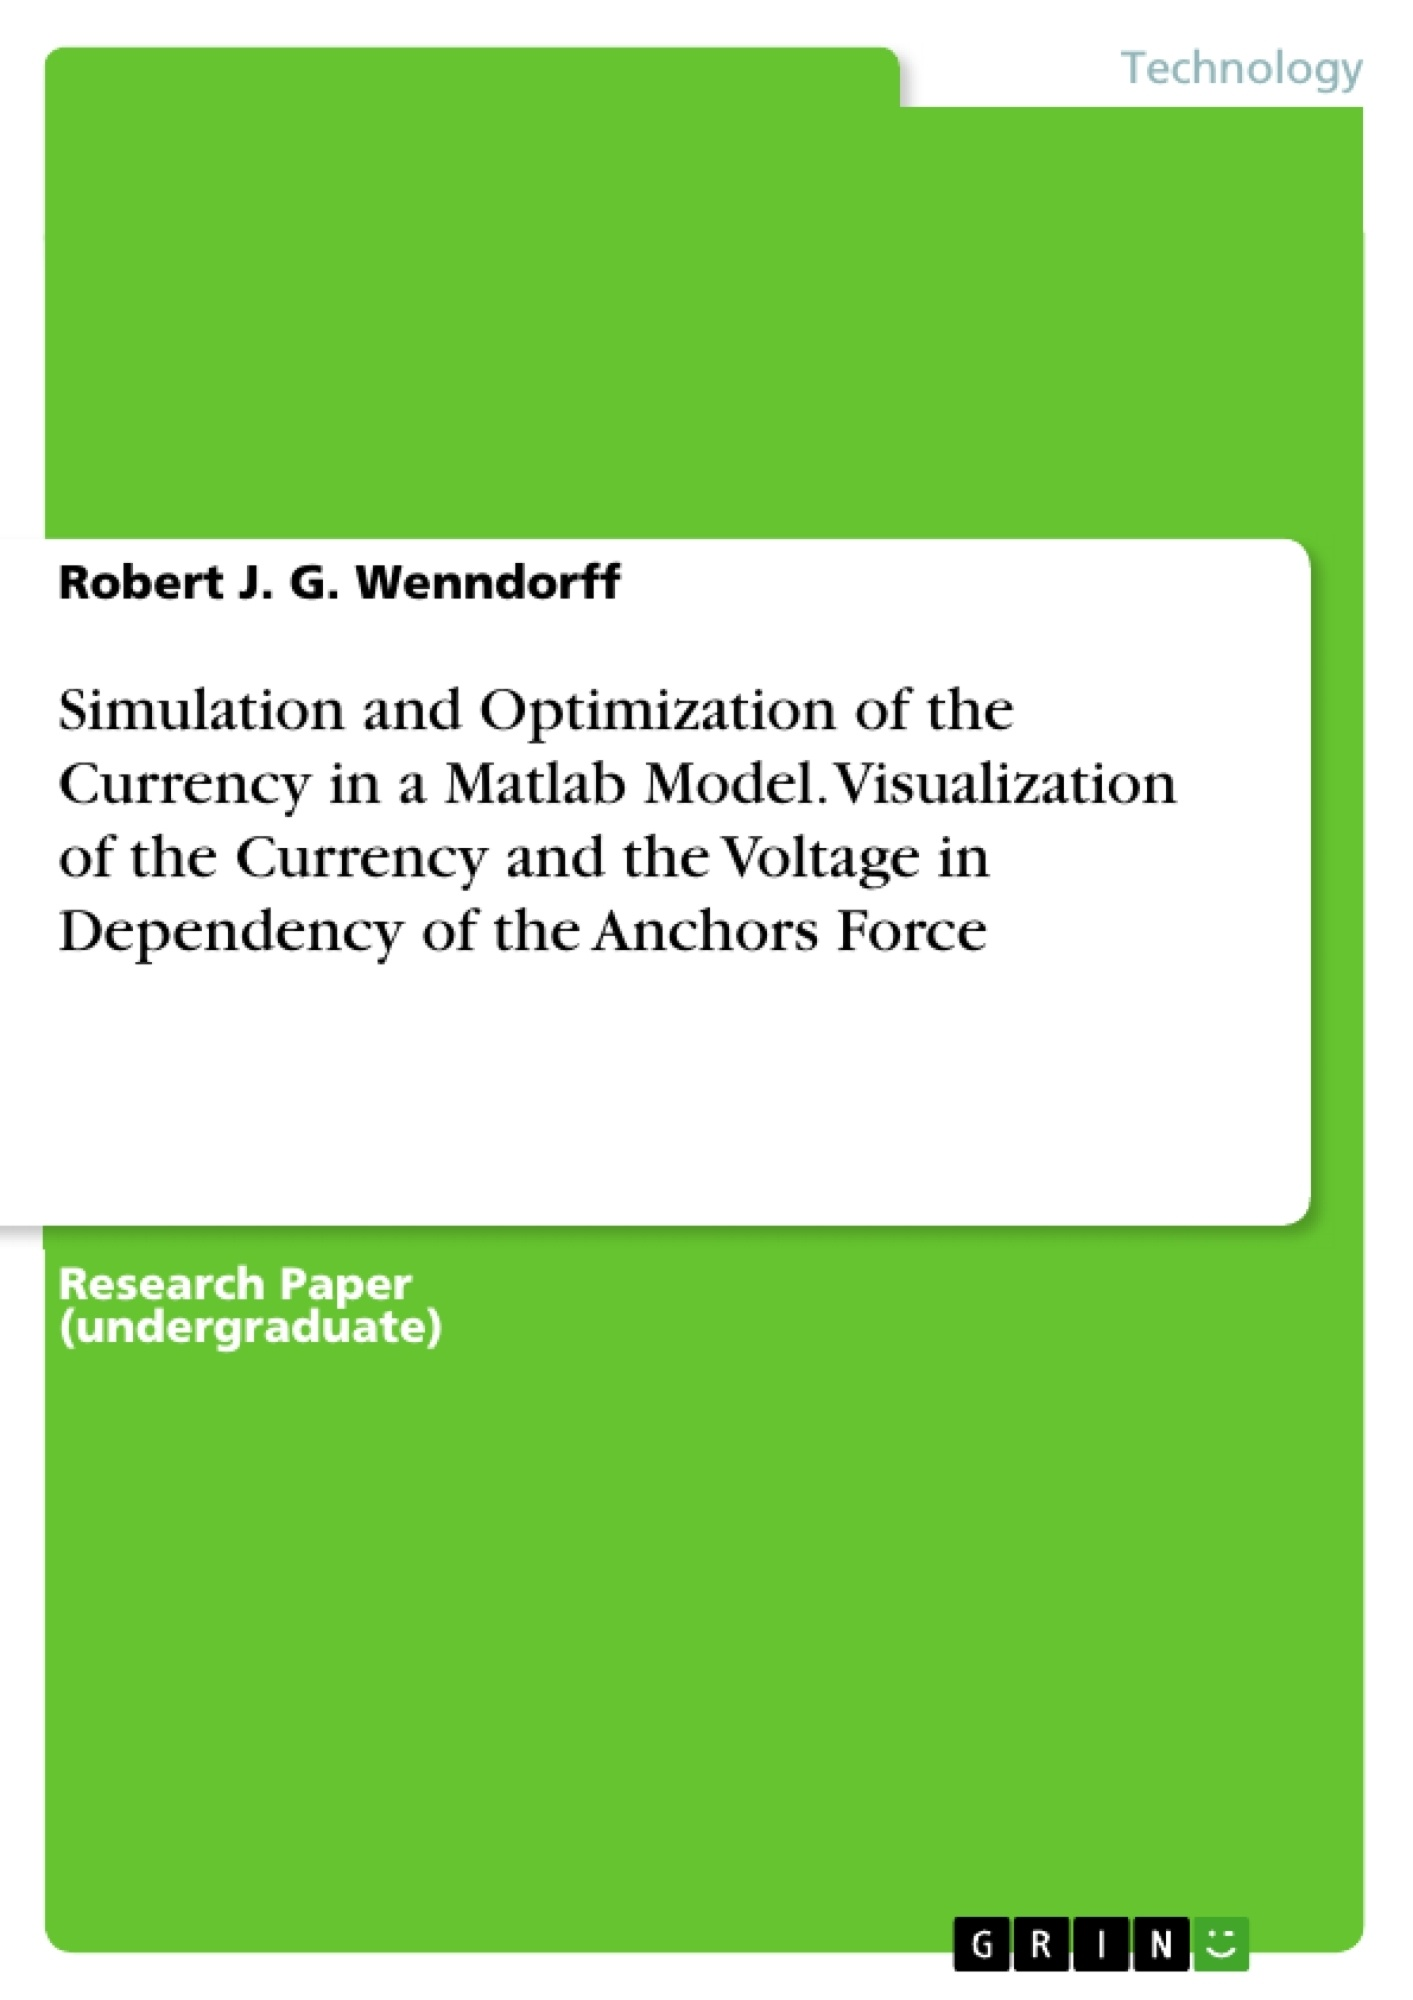 GRIN - Simulation and Optimization of the Currency in a Matlab Model   Visualization of the Currency and the Voltage in Dependency of the Anchors  Force